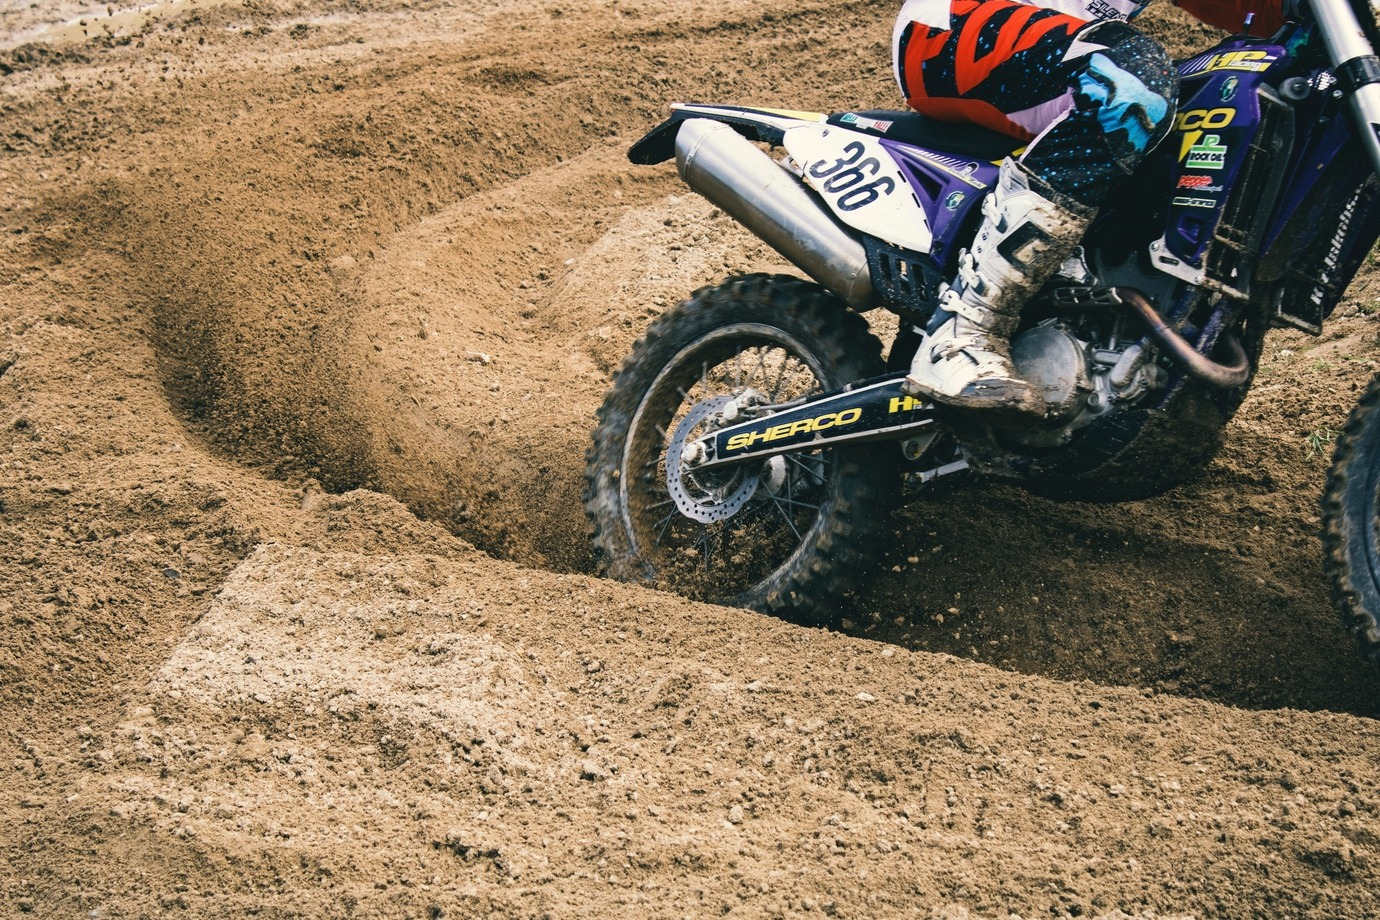 The 5 Best Aftermarket Mods for Dirt Bikes